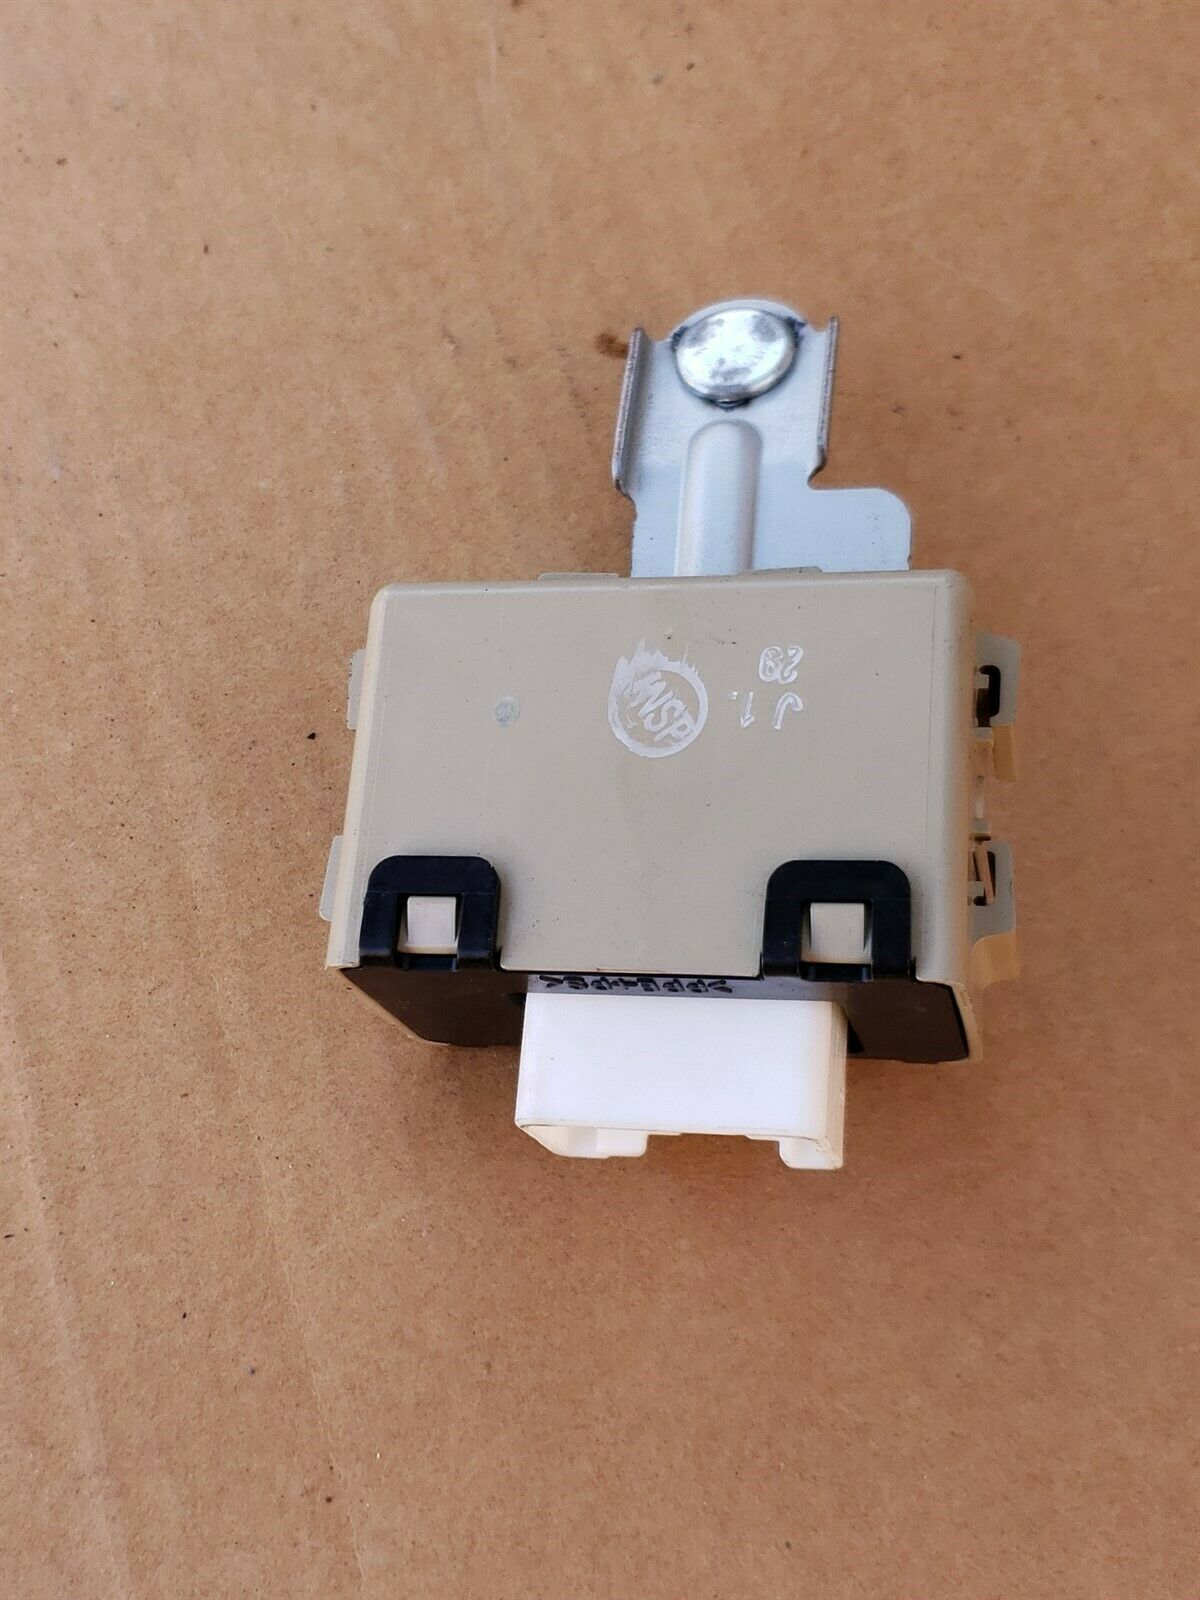 02-07 Toyota Sequoia Tow Towing Control Module 81985-0c040